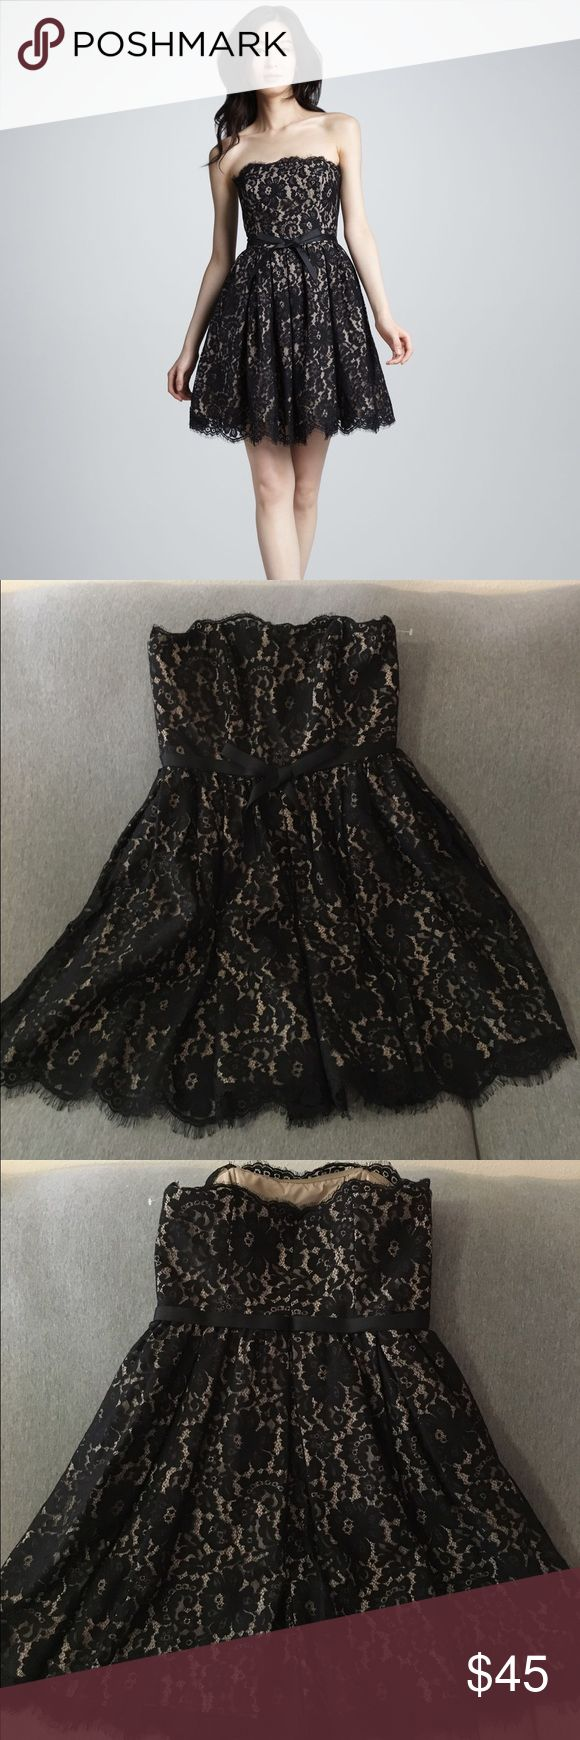 NWOT Robert Rodriguez Newman Marcus dress Gorgeous, never worn dress ready for your next party! Classic black lace design with a sweet bow around the waste. Available in size 6 and 8. Bundle and save! Open to offers too. Neiman Marcus Dresses Strapless